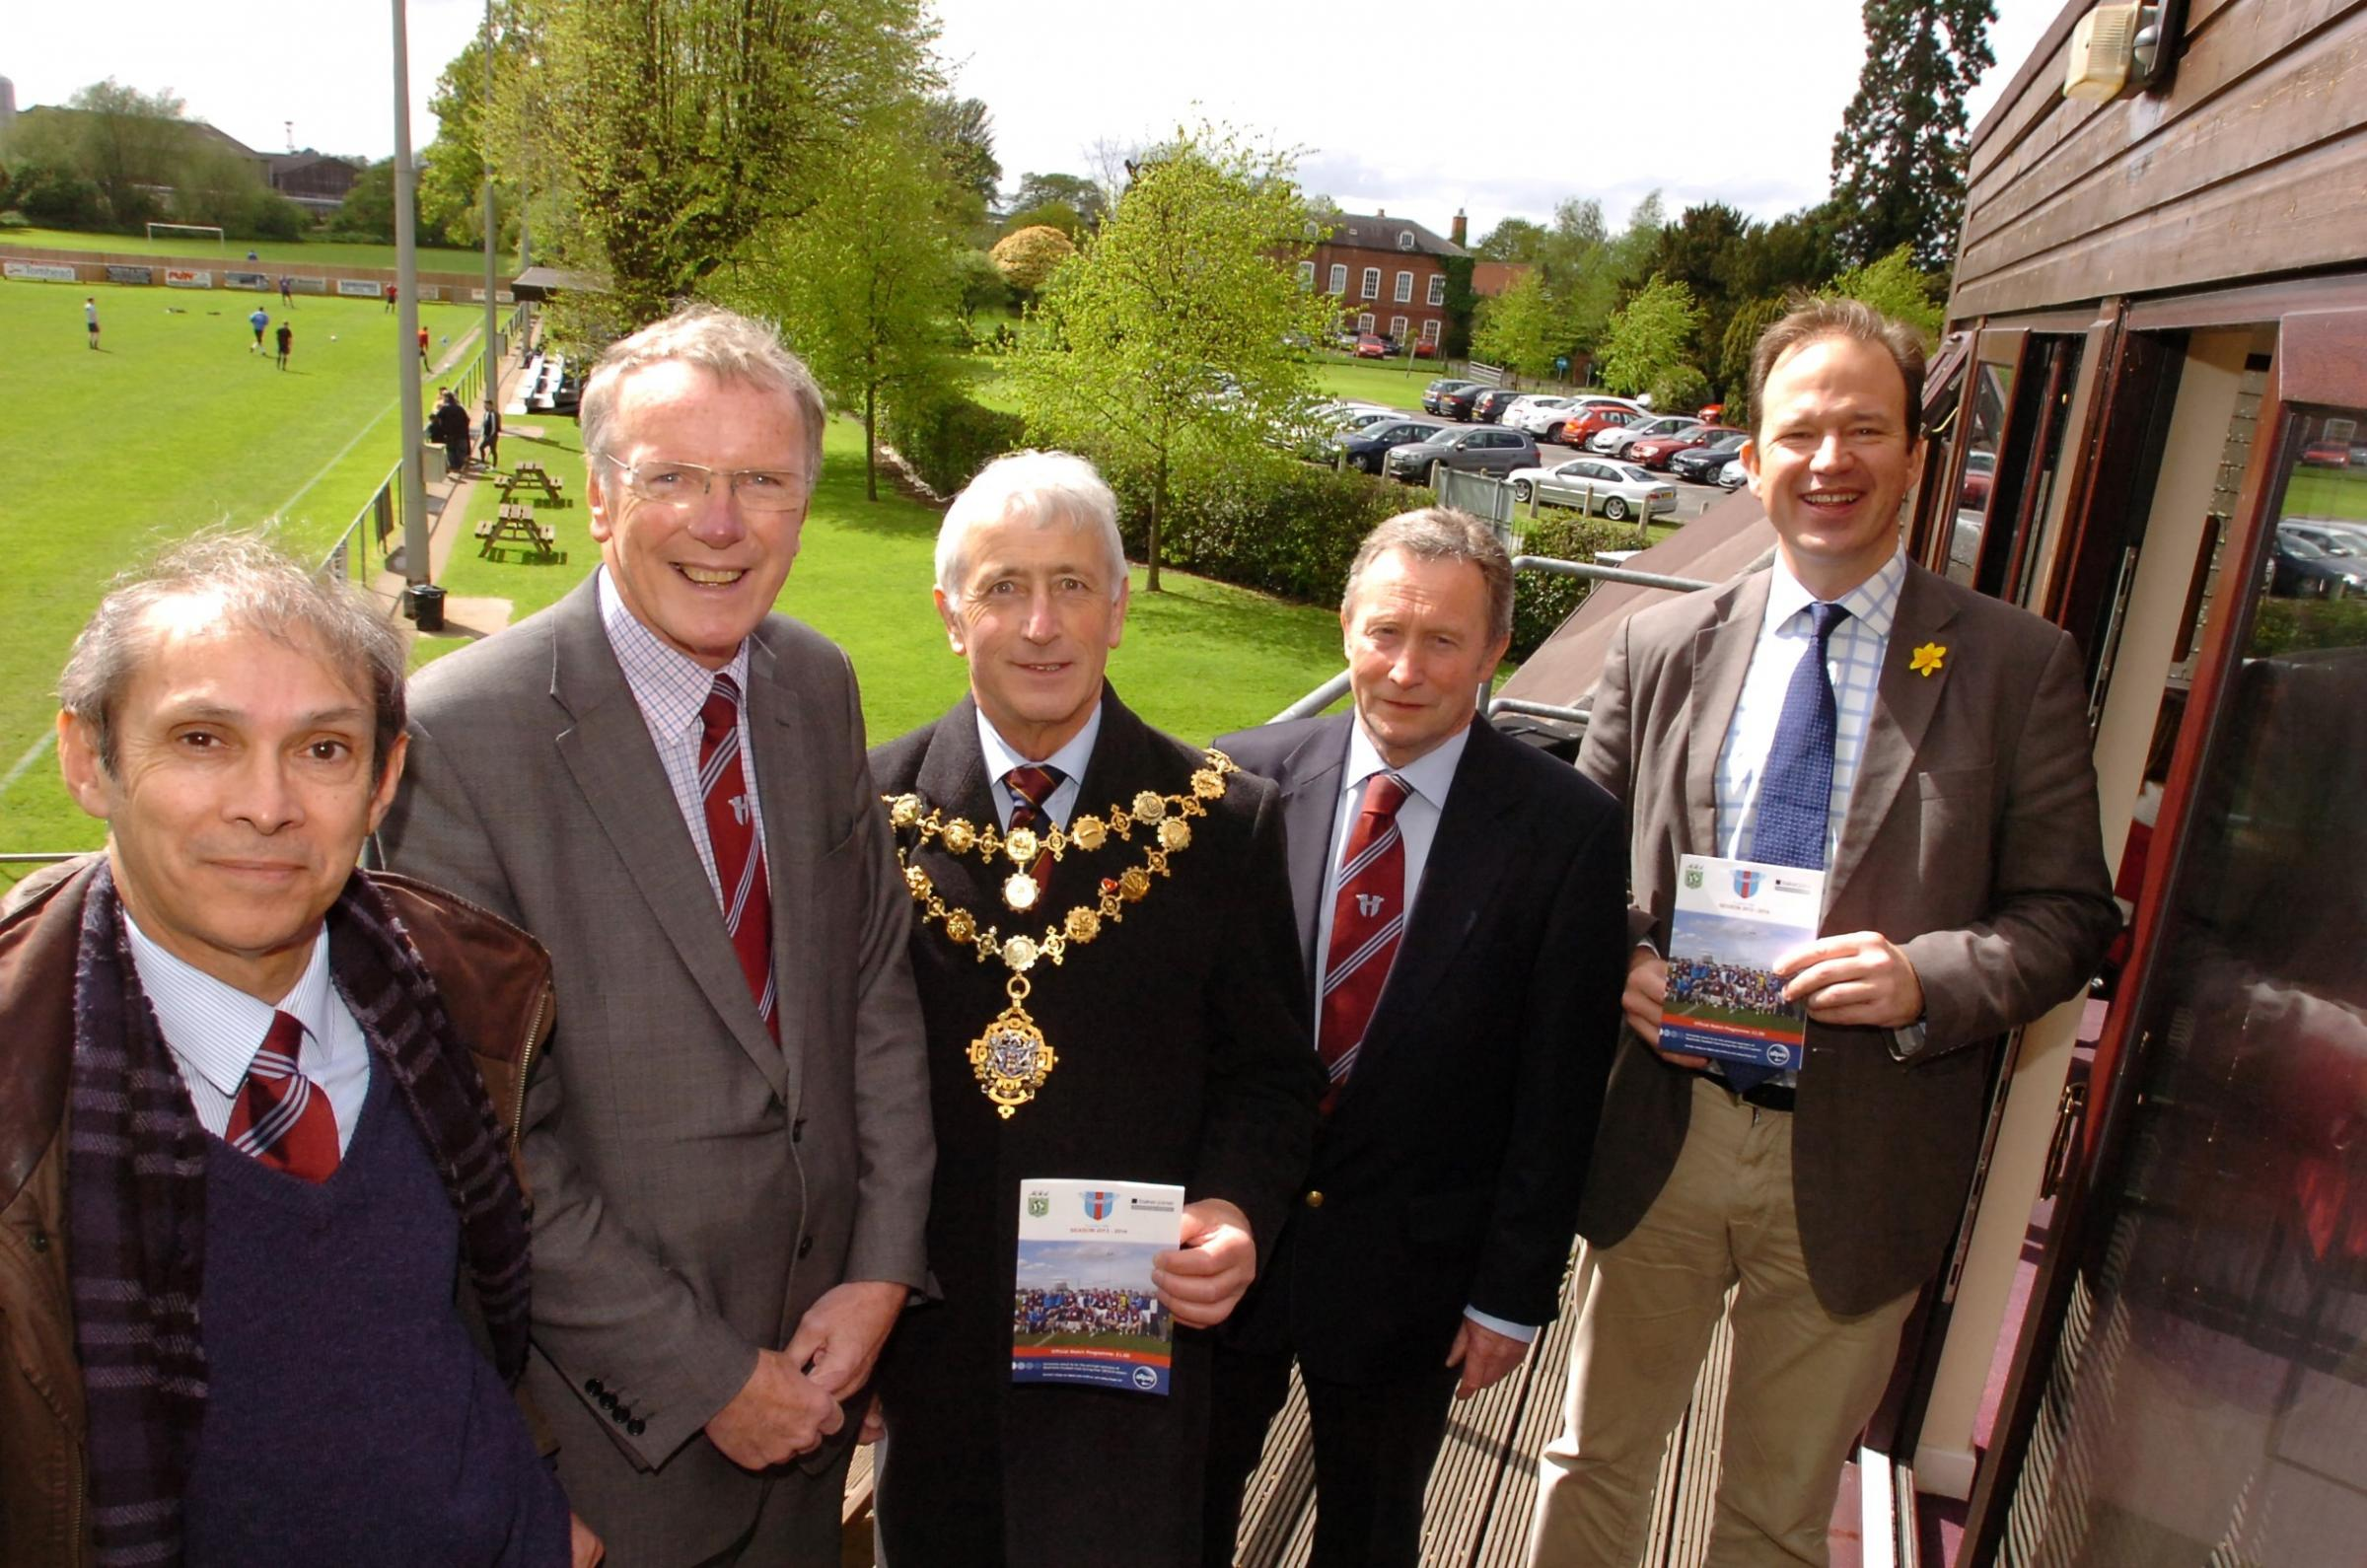 Westfields FC celebrate their 10th anniversary at Allpay Park, Hereford. (l-r), Dr. Jonathan Godfrey (Hereford Sixth Form College Principal), Andy Morris (Chief Executive), Mayor of Hereford Phil Edwards, John